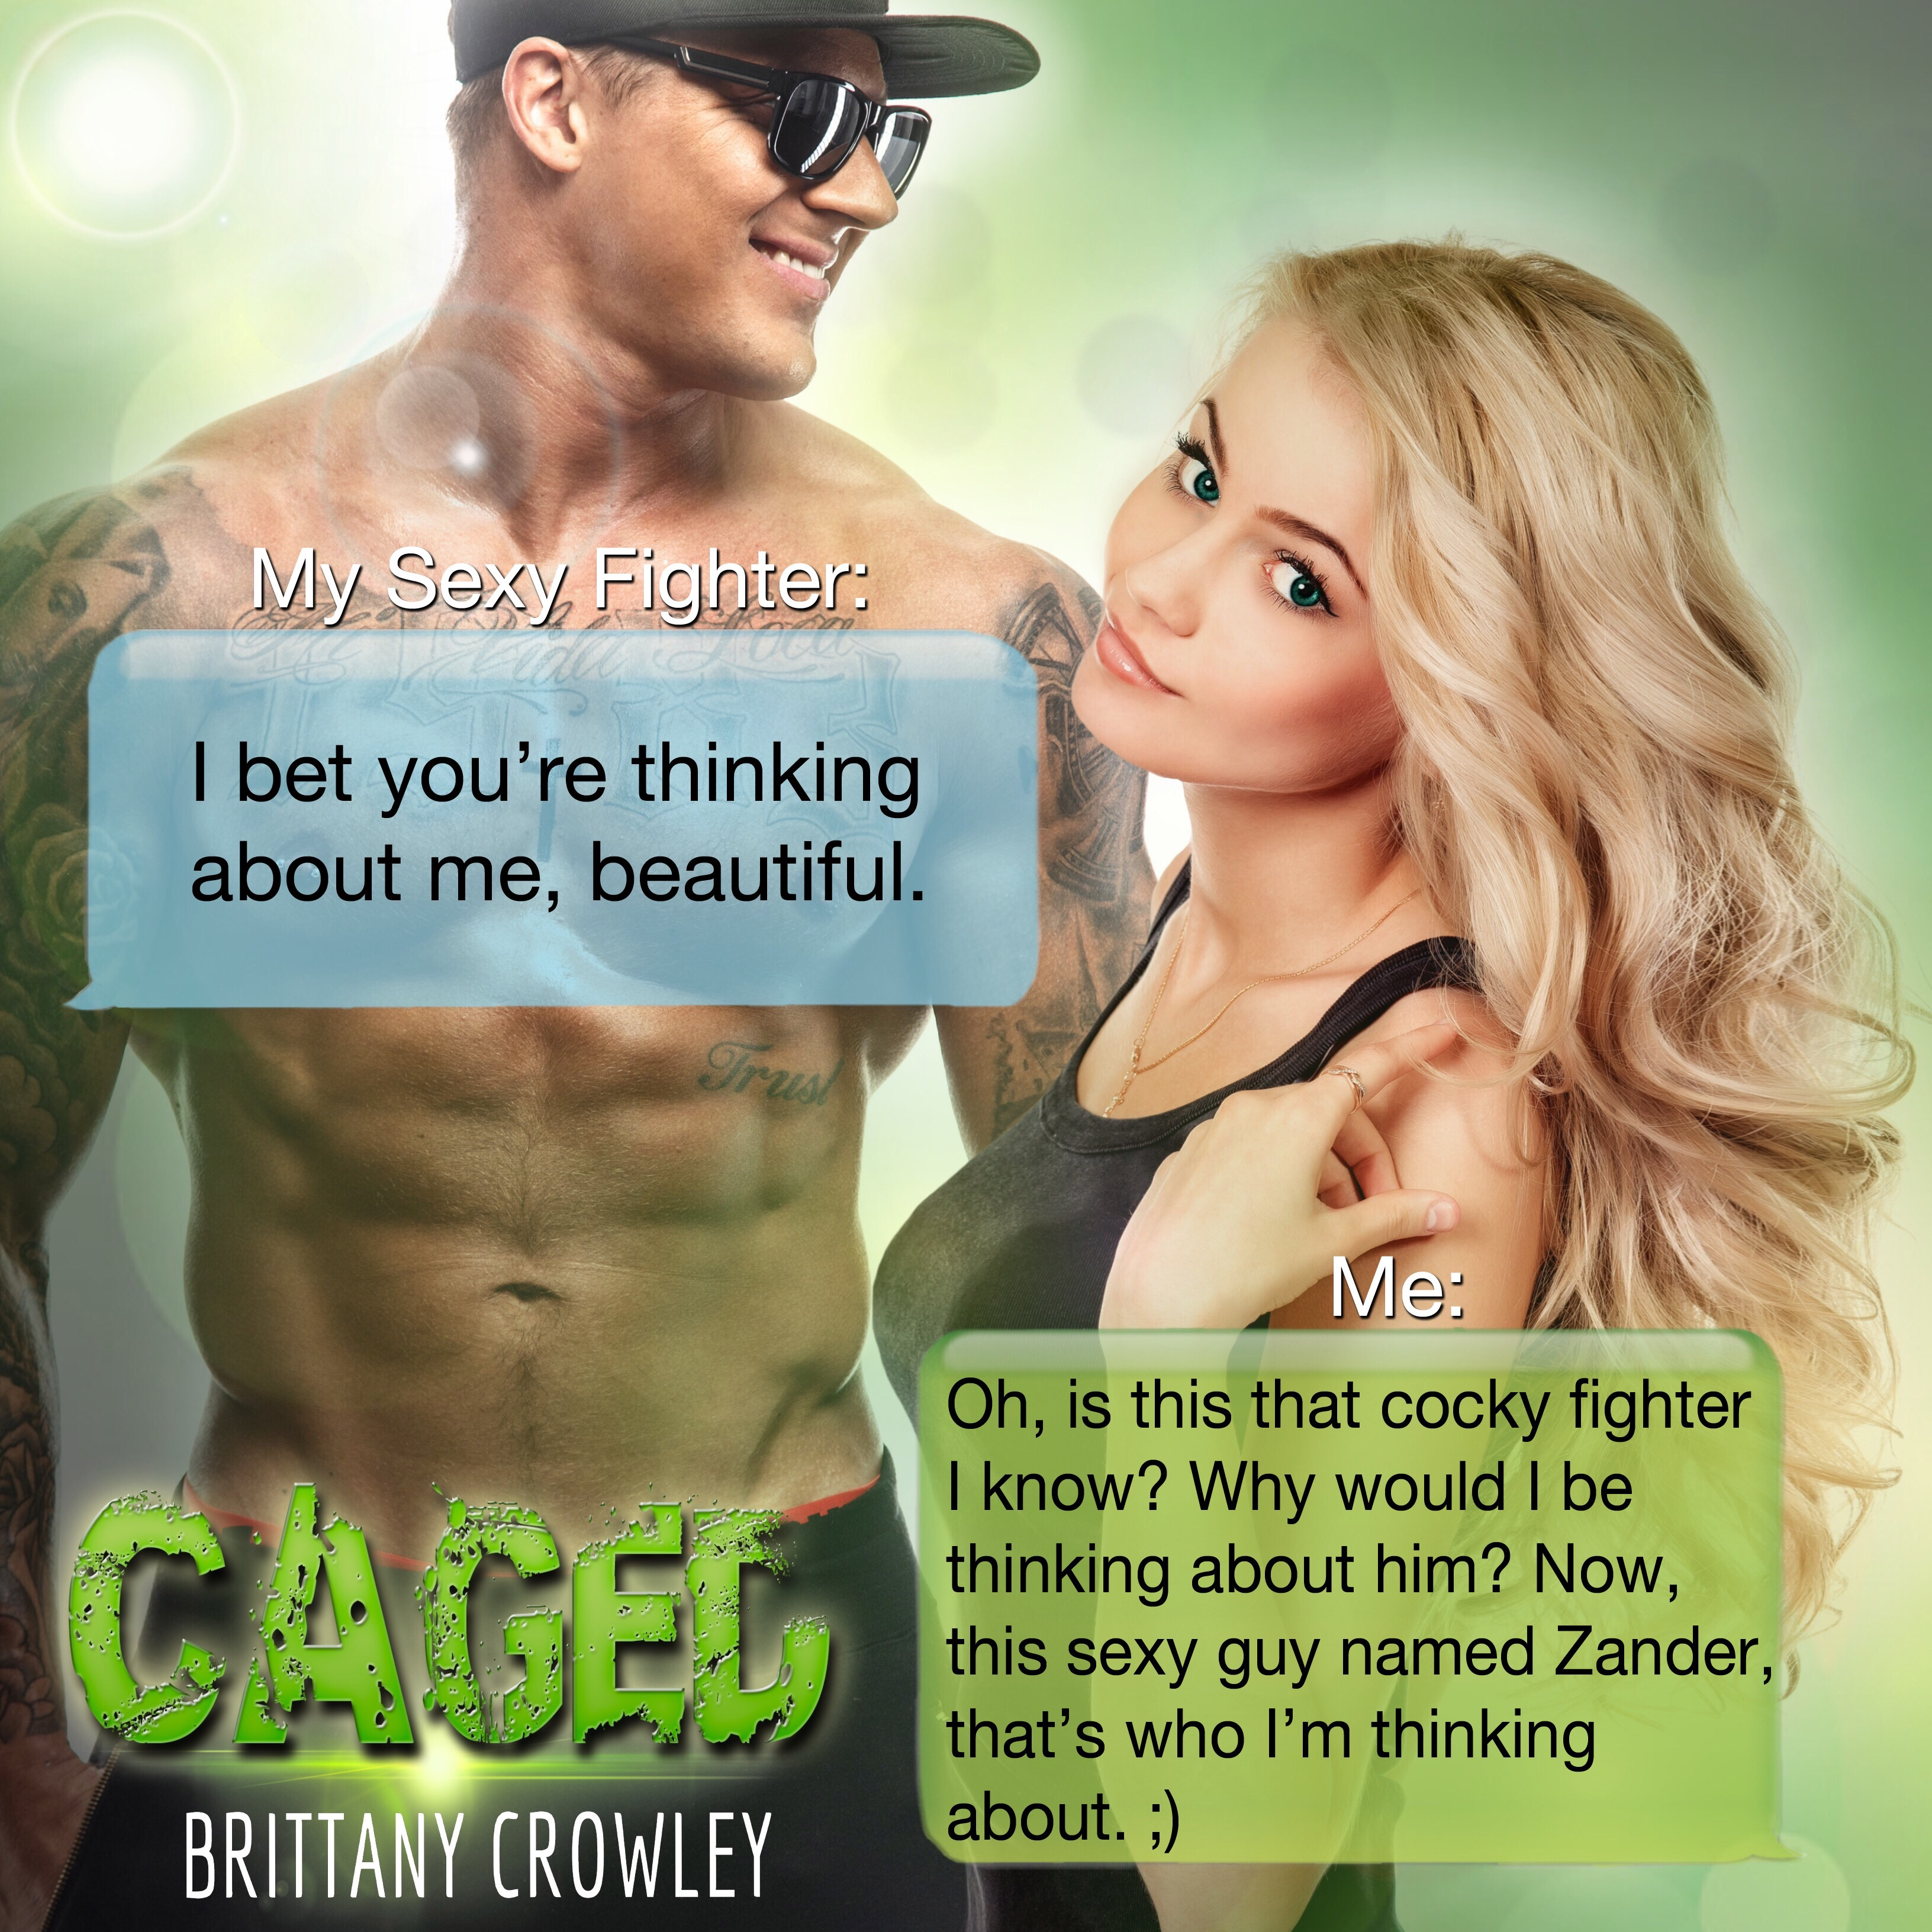 Caged (Brittany Crowley)